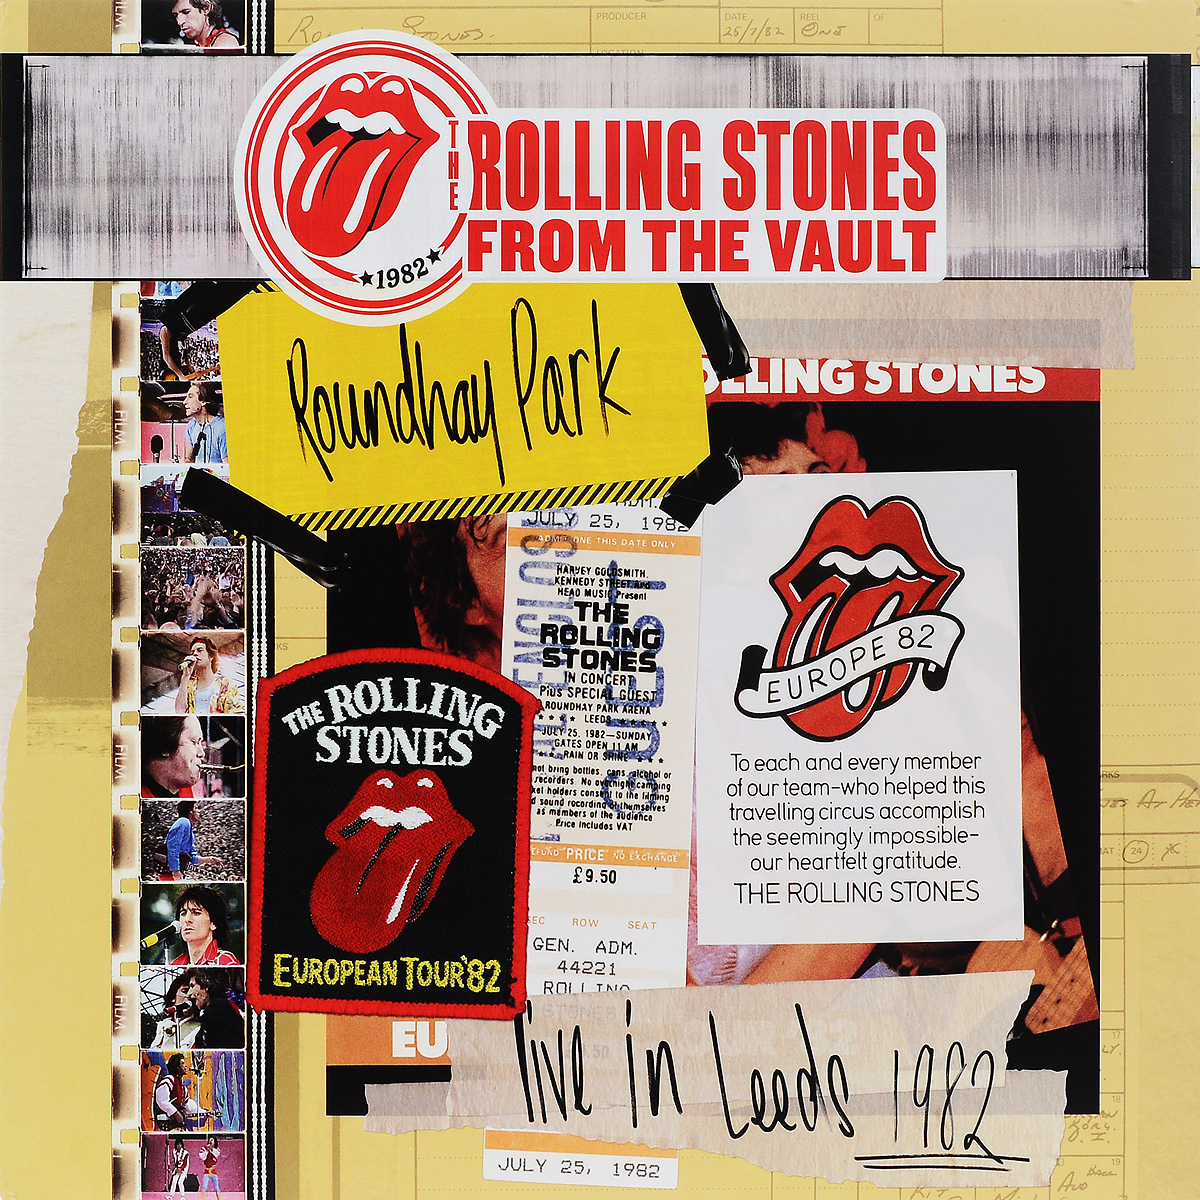 The Rolling Stones The Rolling Stones. Live In Leeds 1982 (3 LP + DVD) procol harum procol harum live in concert with the edmonton symphony 2 lp colour